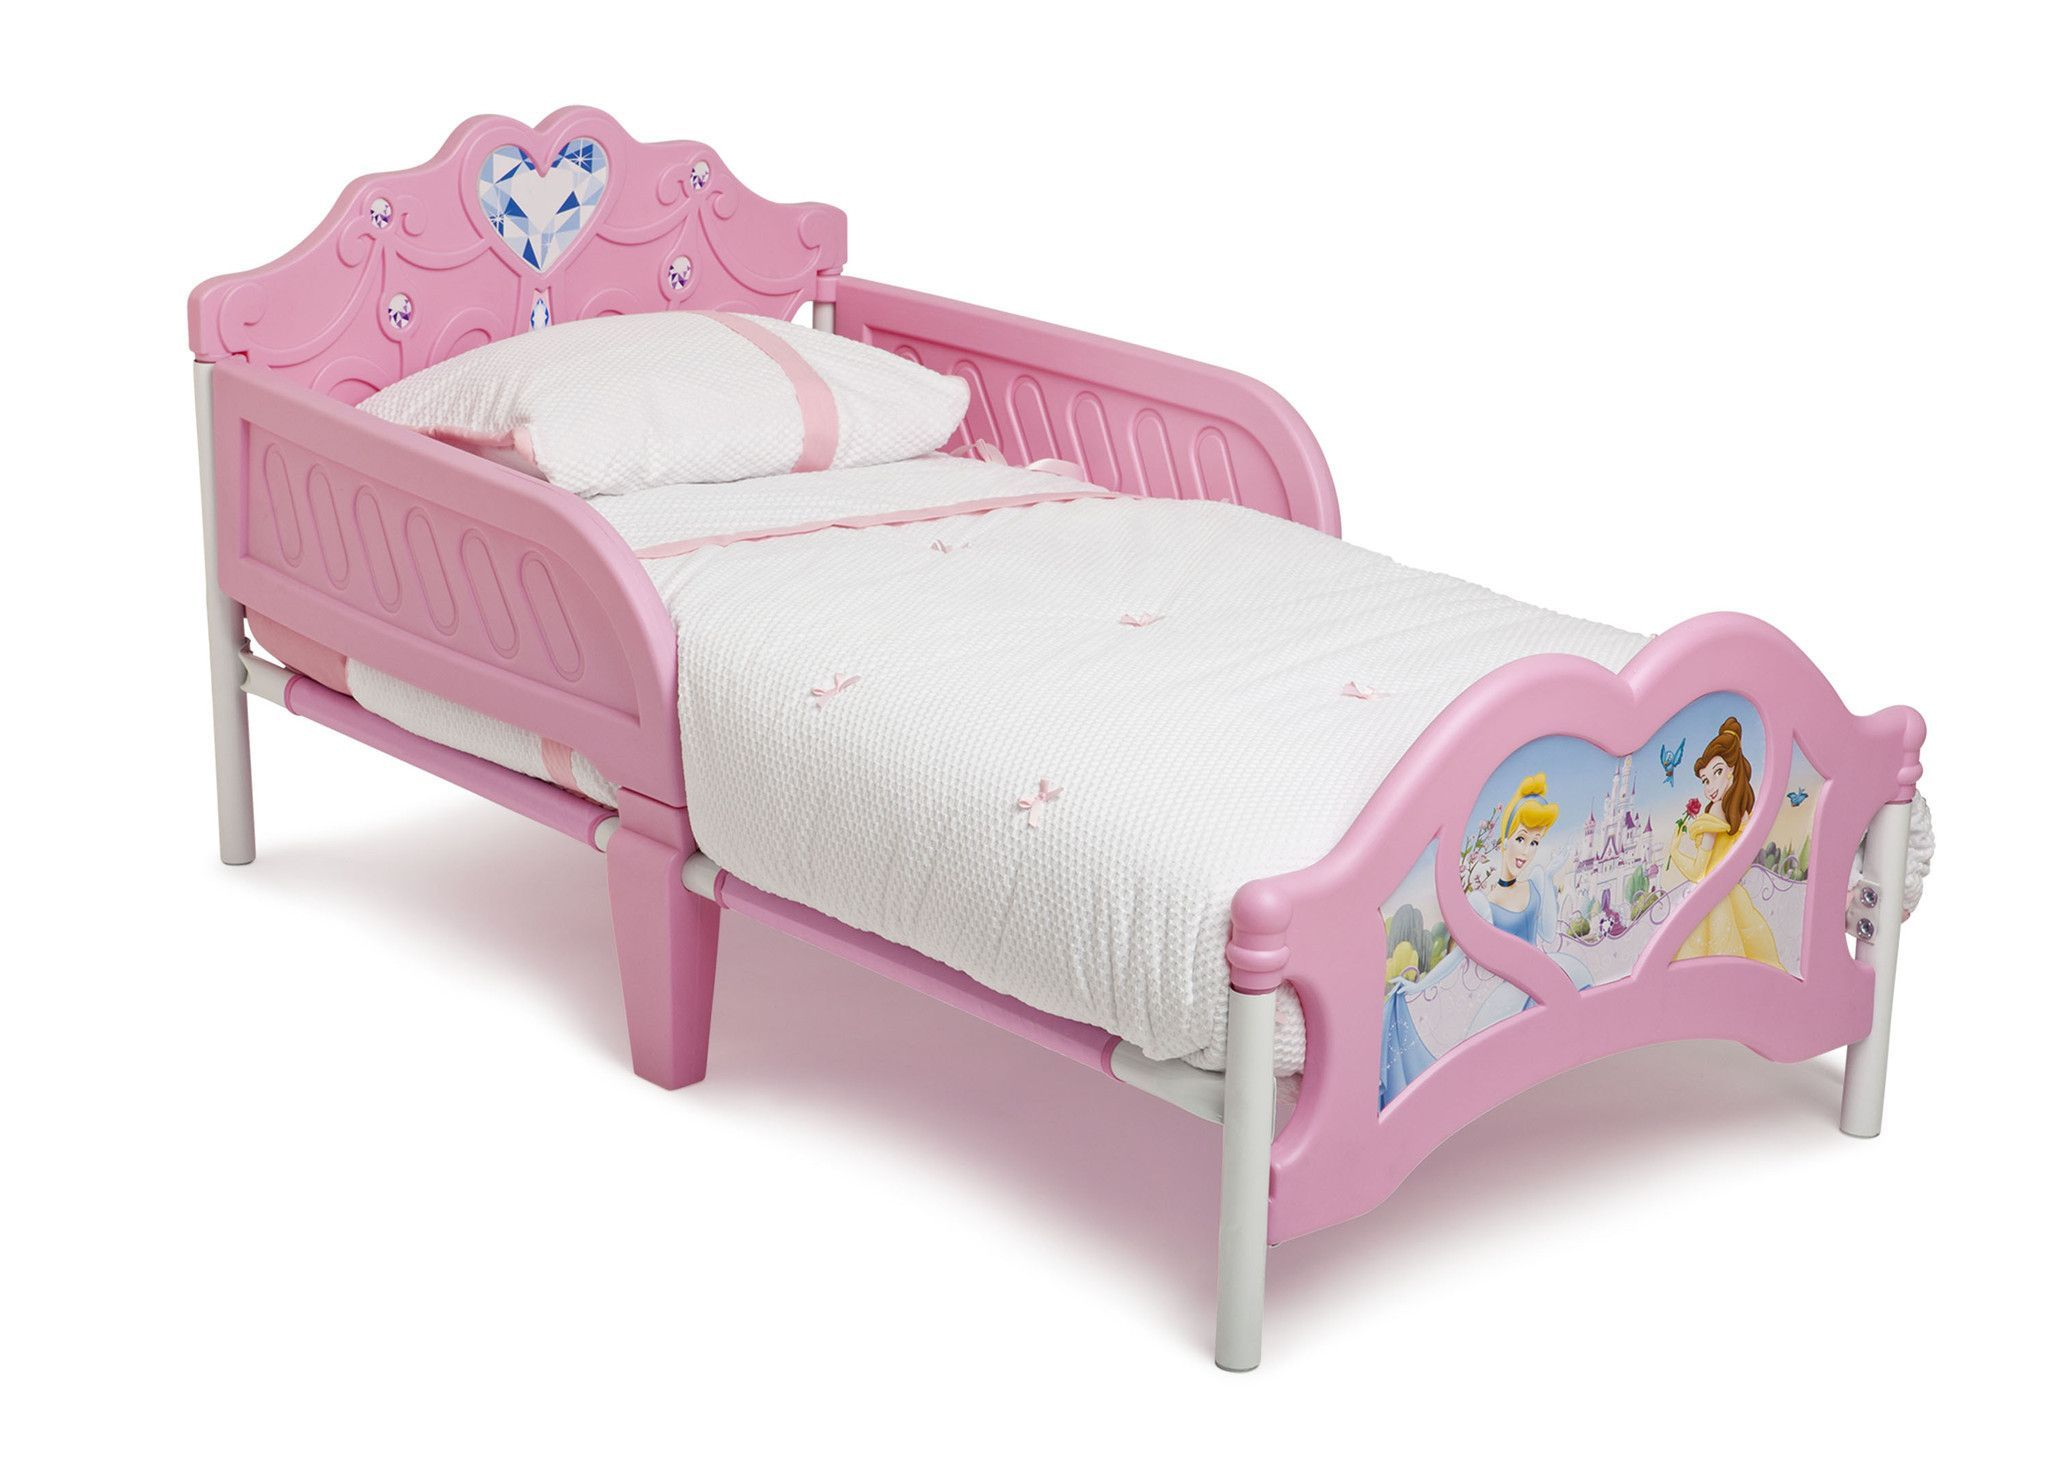 make her bedroom magical with this disney princess 3d plastic toddler bed from delta children